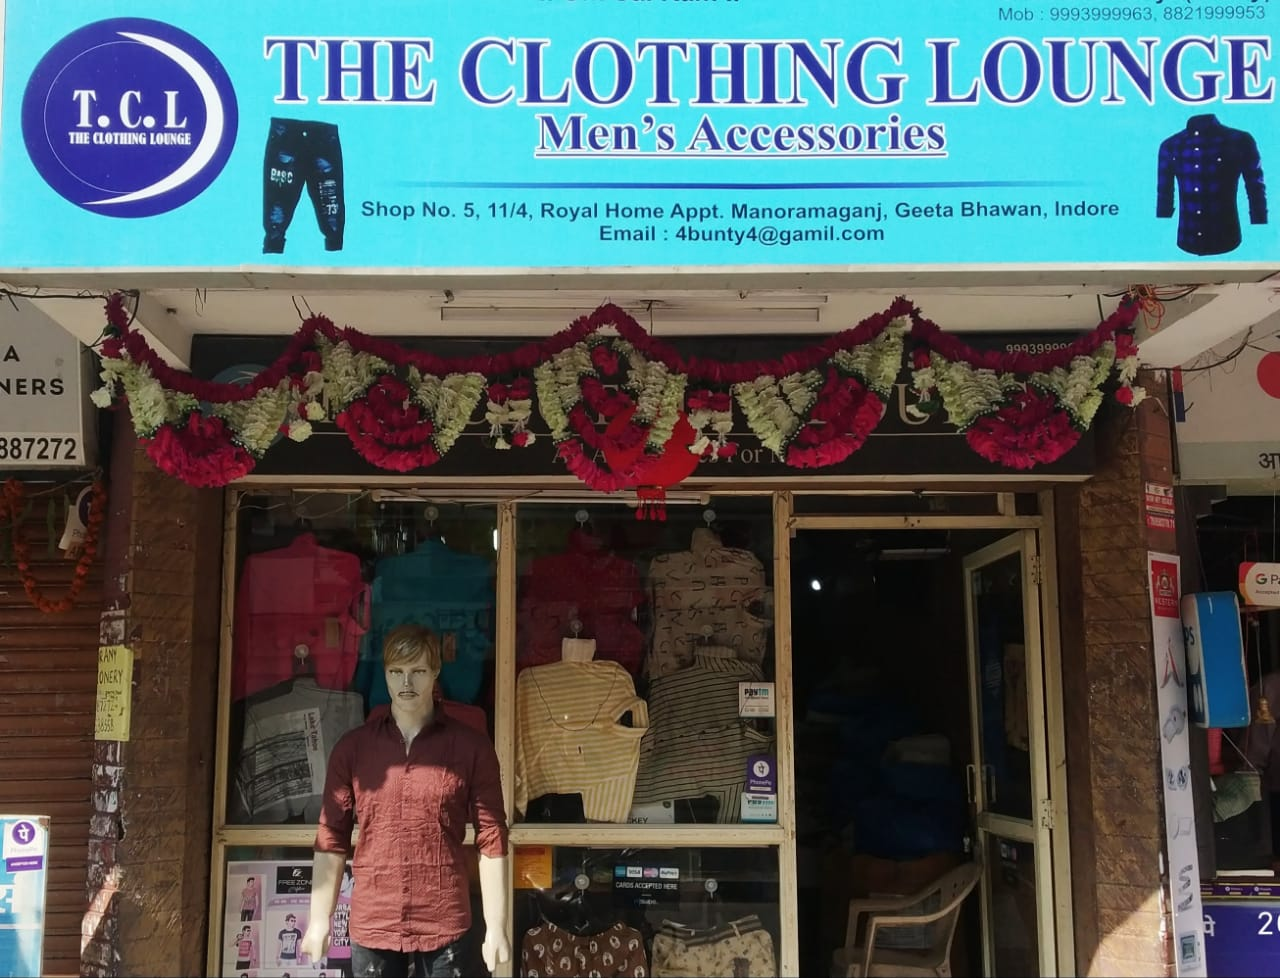 TCL THE CLOTHING LOUNGE